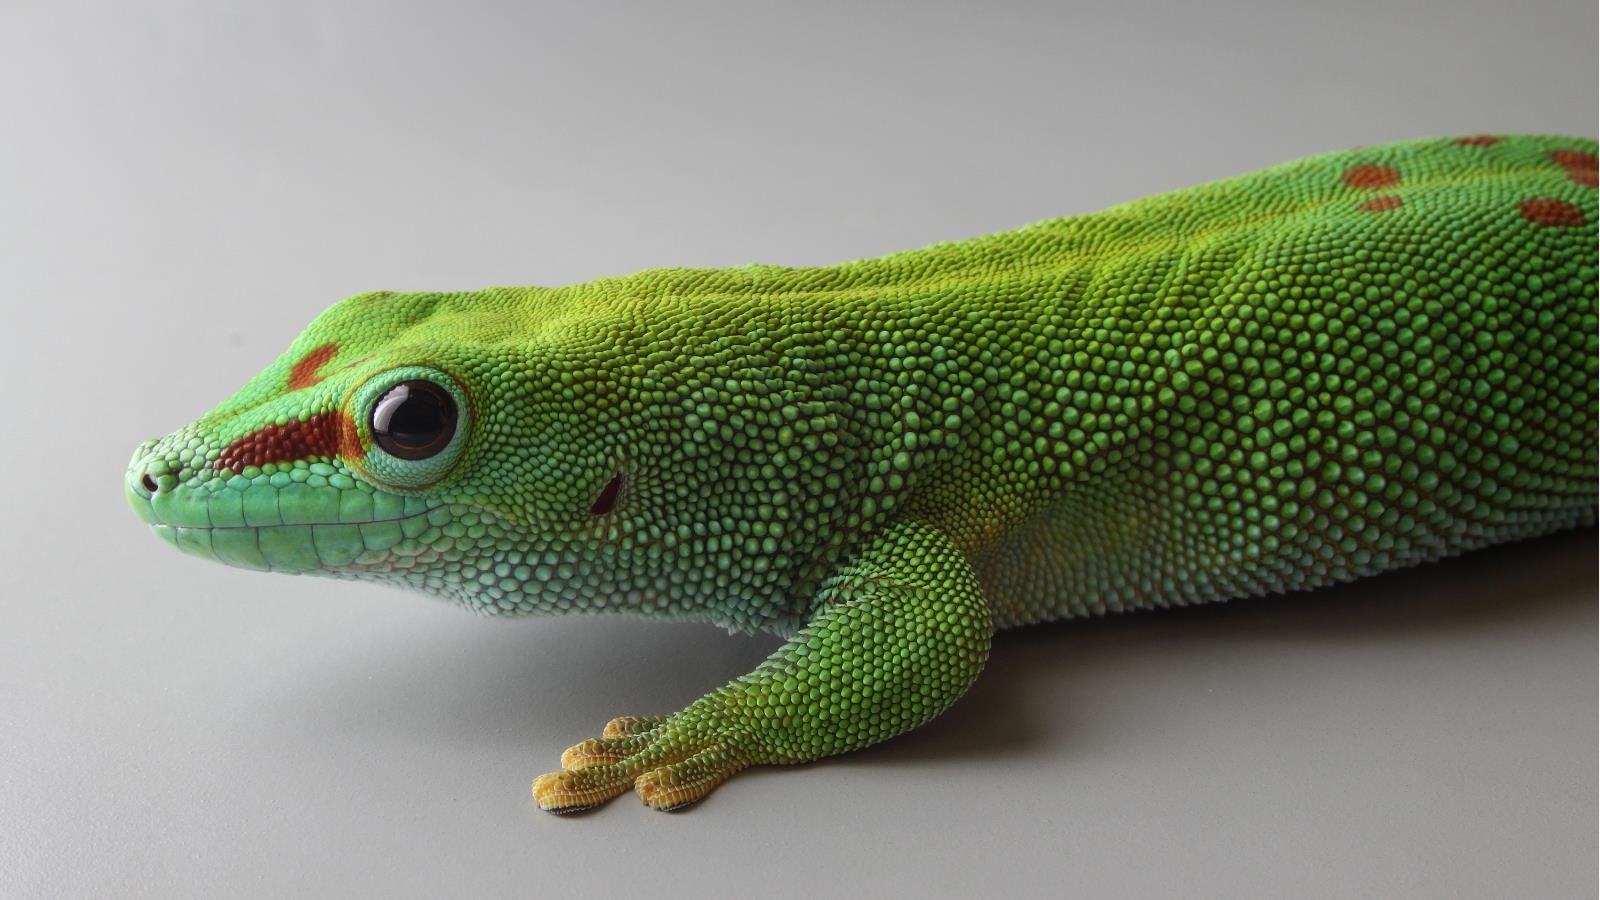 Awesome Gecko free wallpaper ID:114519 for hd 1600x900 PC